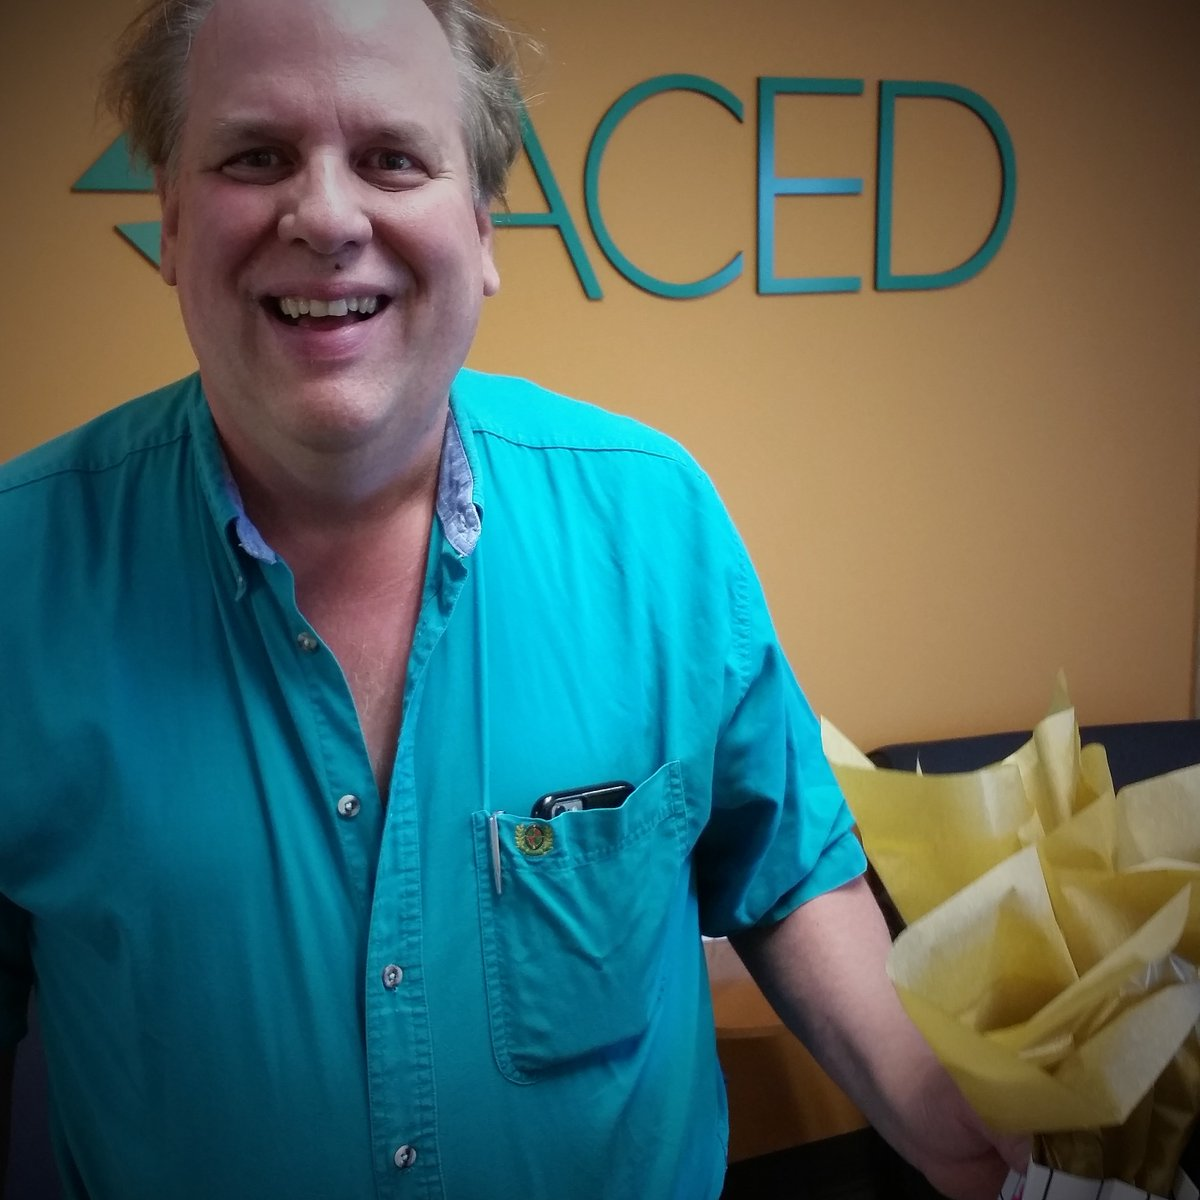 Douglas was excited to pick-up his $25 @eddiebauer gift card prize from our #BikeToWorkDay party at @OrchardTC<br>http://pic.twitter.com/RqEjEEEmmL